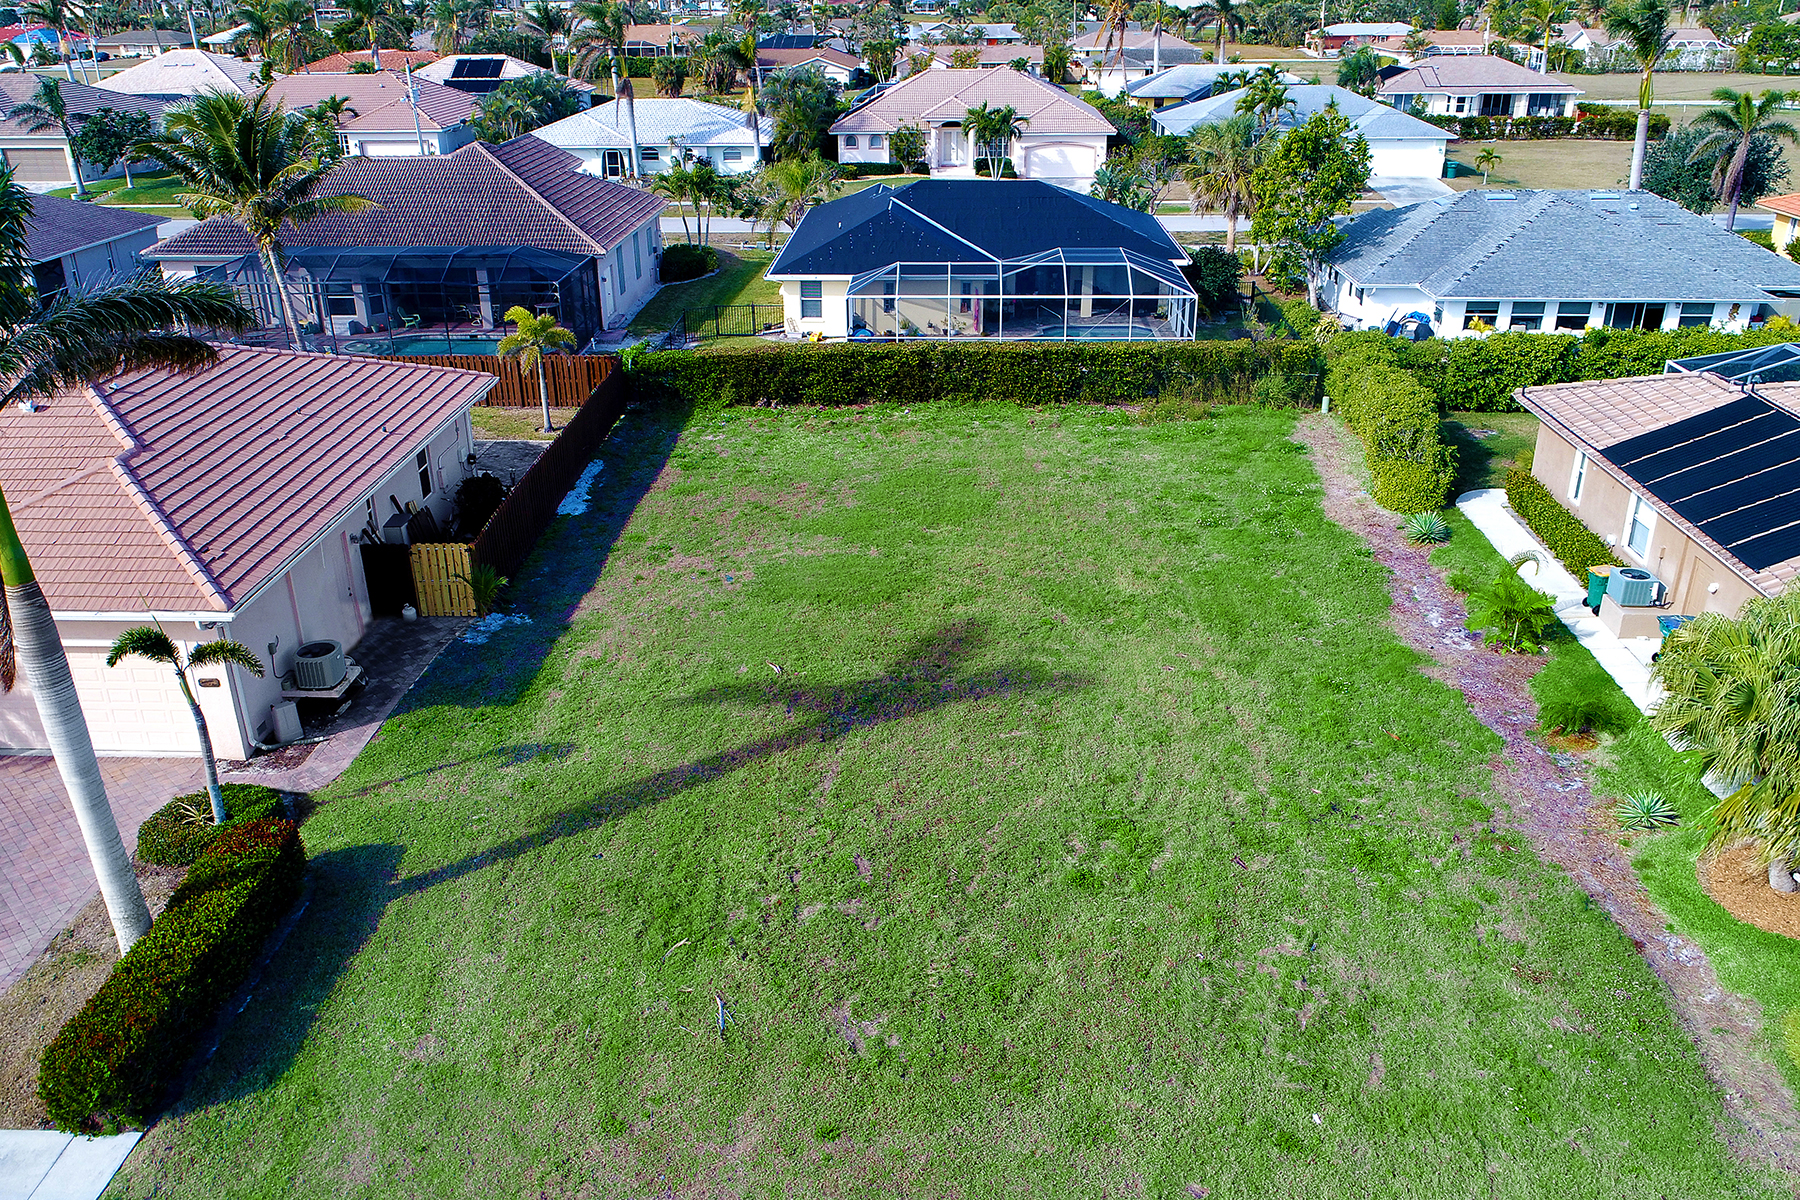 Land for Sale at MARCO ISLAND 350 Hazelcrest St, Marco Island, Florida 34145 United States